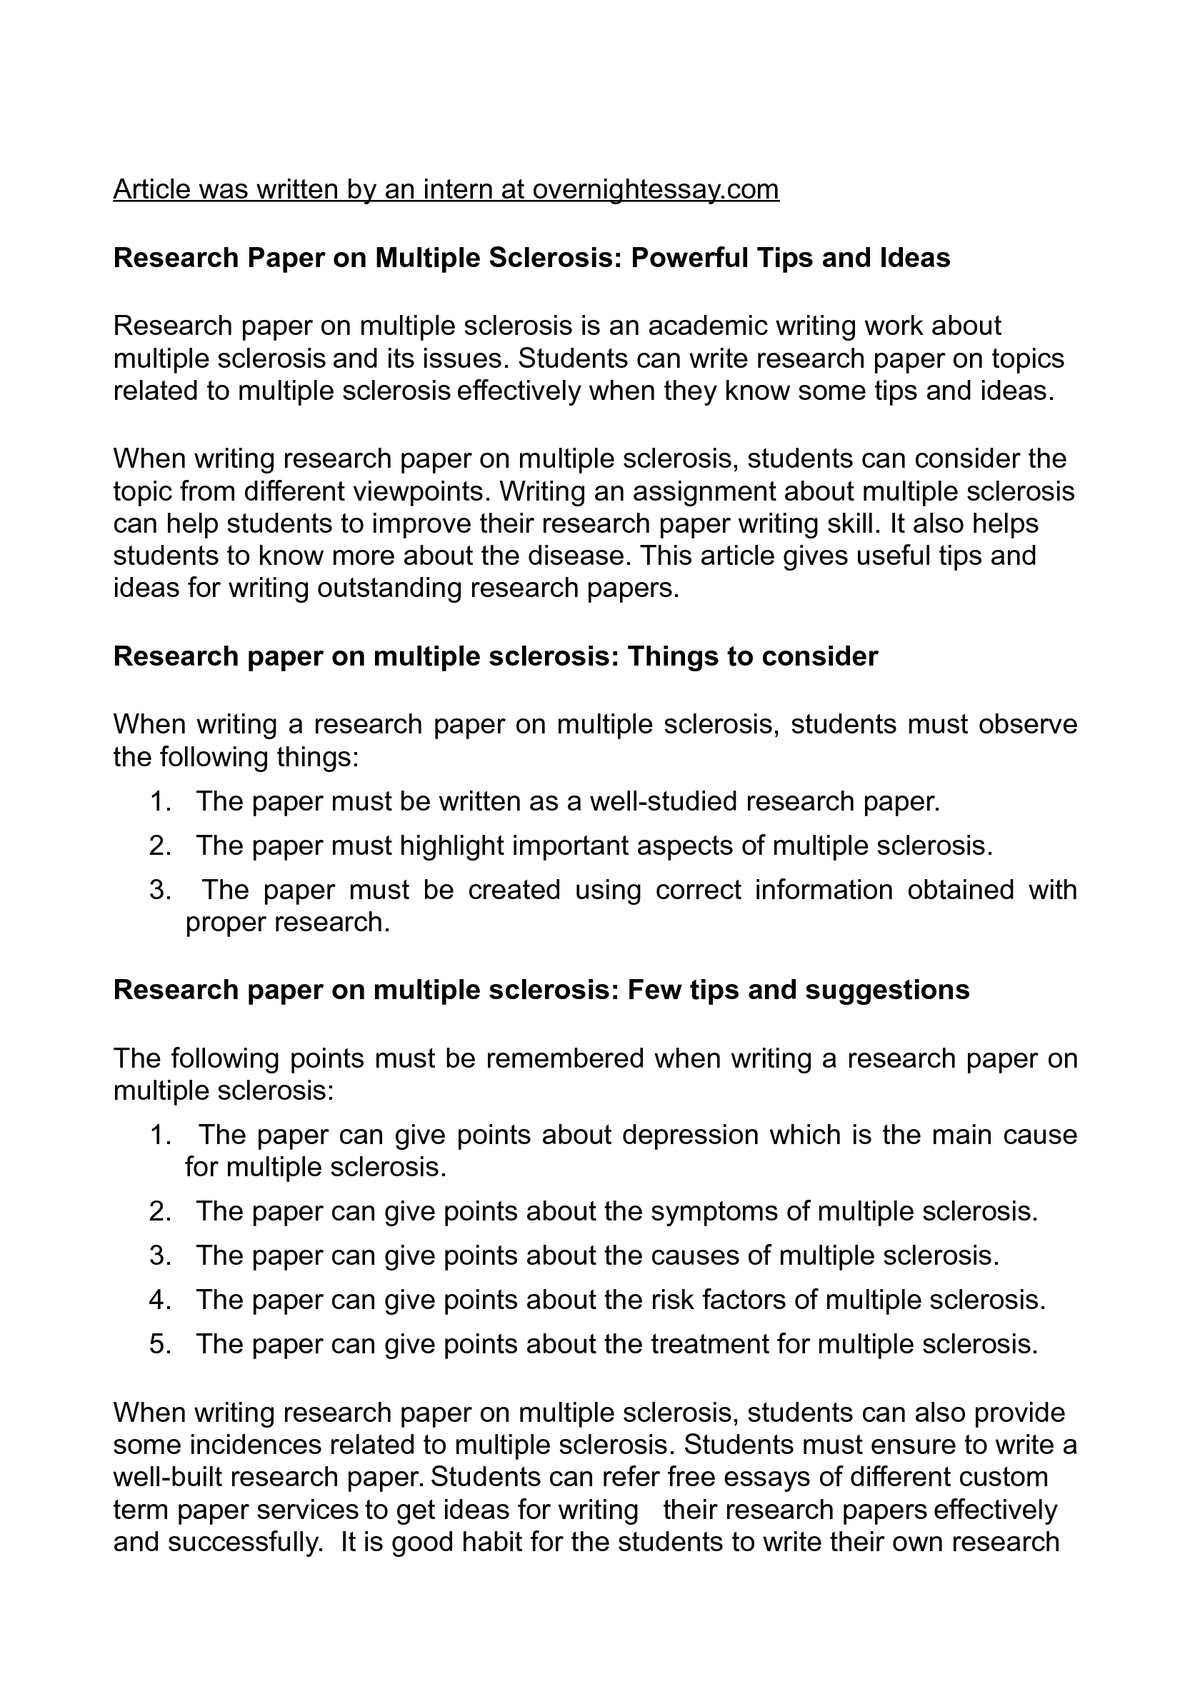 015 P1 Research Paper Write Frightening Papers How To A History Introduction Fast Youtube For Money Full